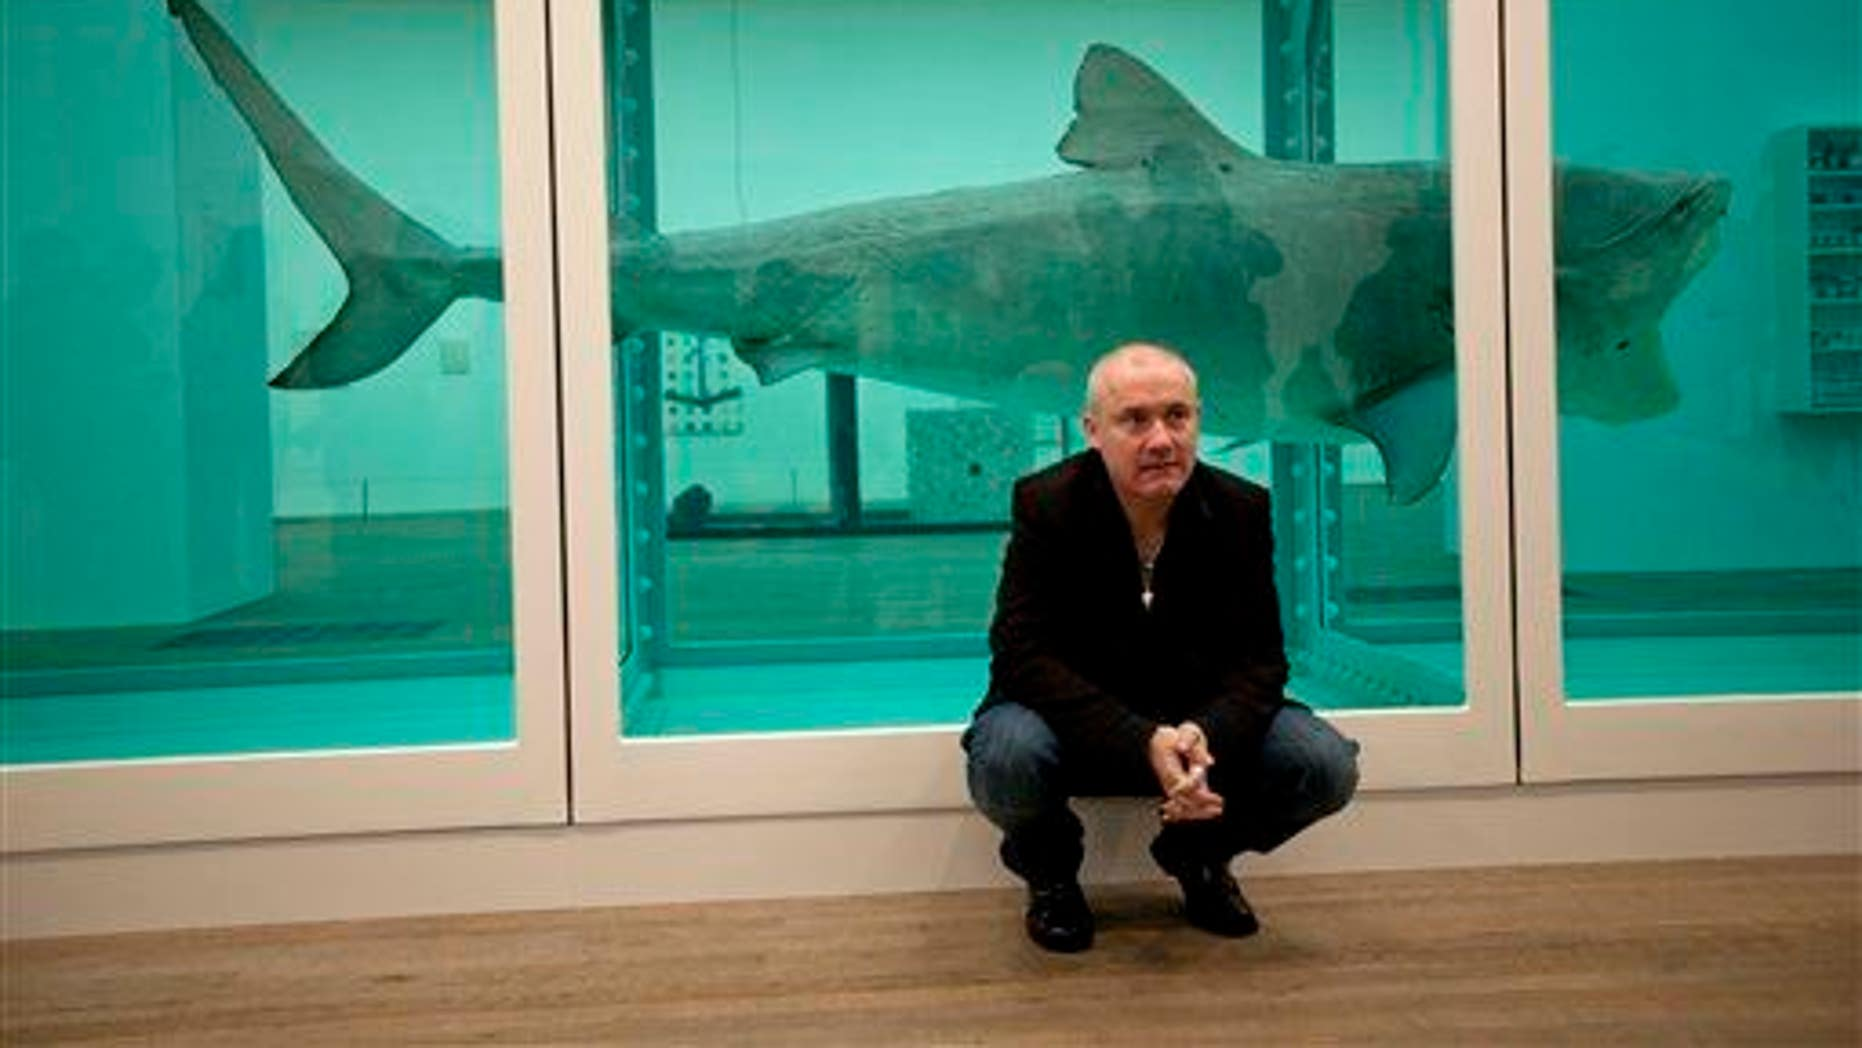 """Damien Hirst poses beside his piece """"The Physical Impossibility of Death in the Mind of Someone Living"""" in 2012 at the Tate. Death was actually not so impossible, as a new study finds the piece was leaking poisonous gas."""